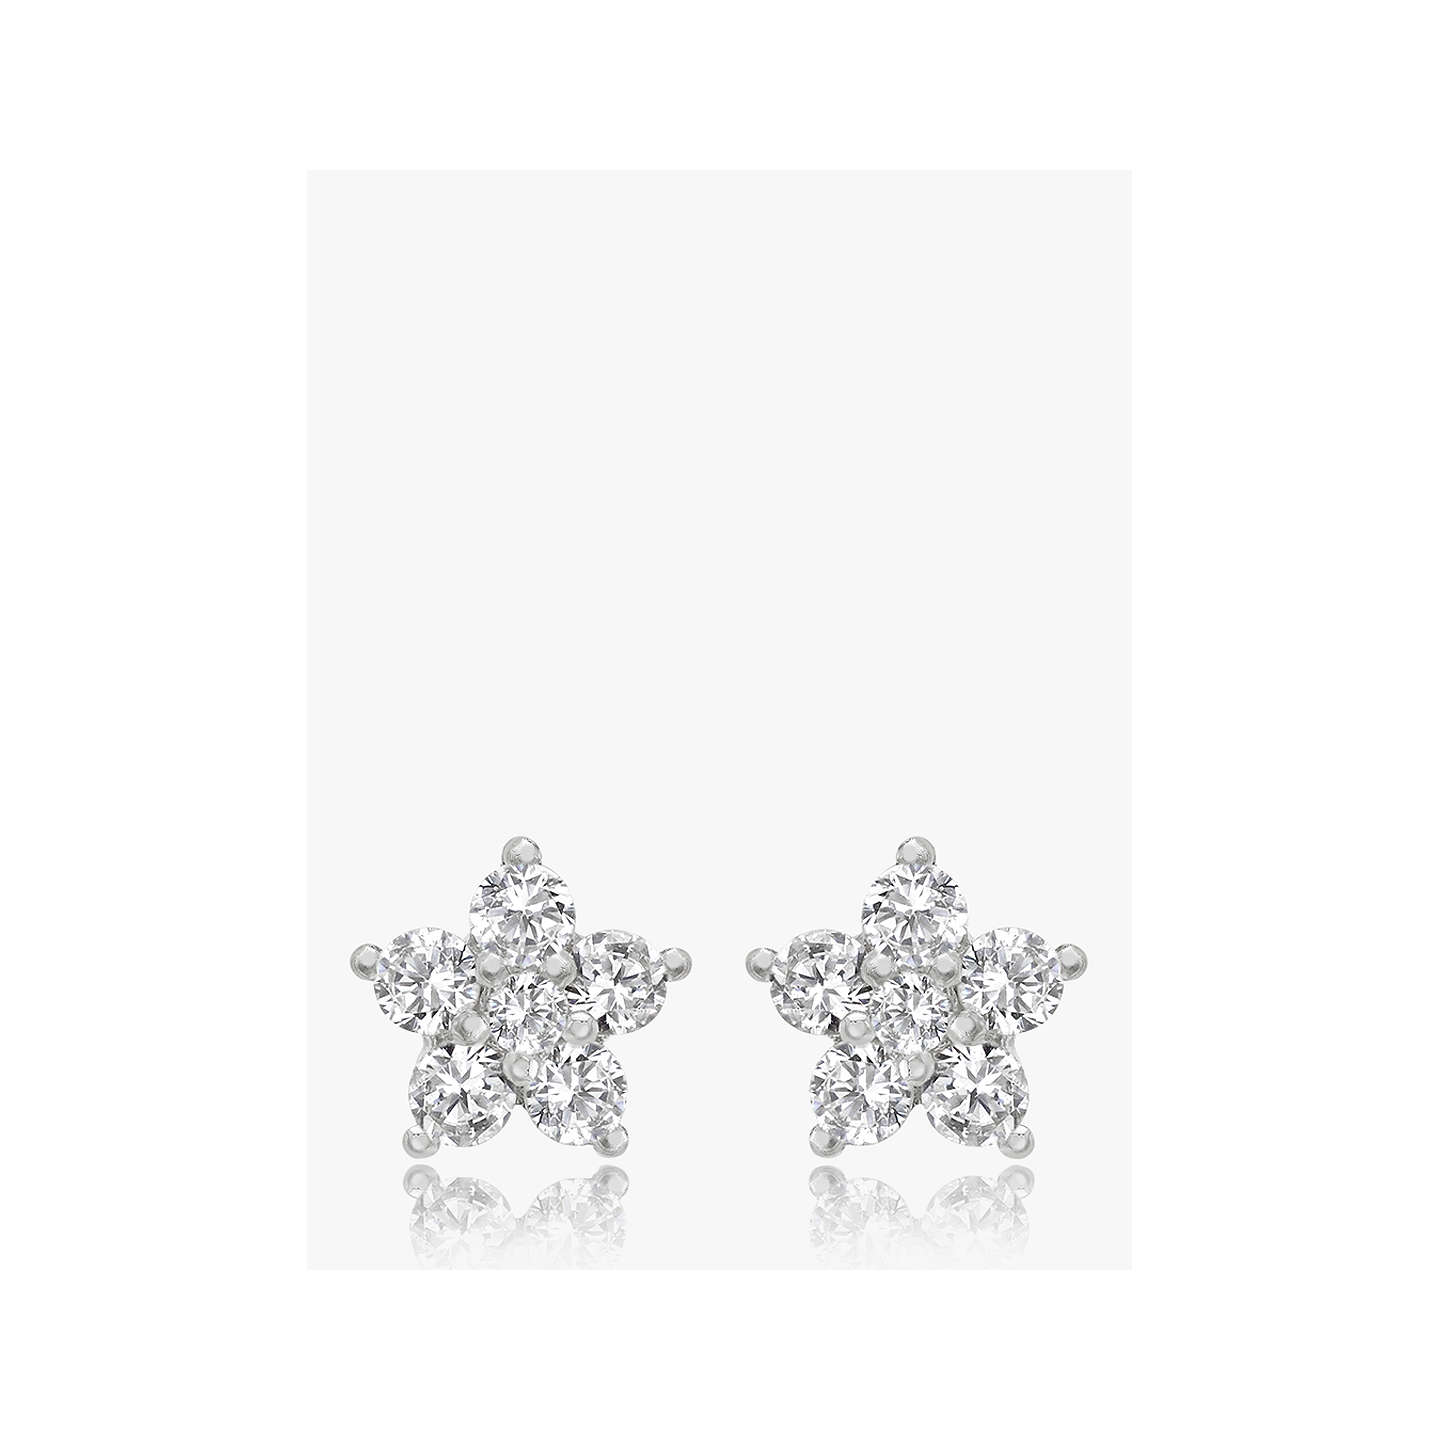 flower com earrings main online johnlewis blue and rsp ewa buyewa at sapphire white gold stud pdp big diamond